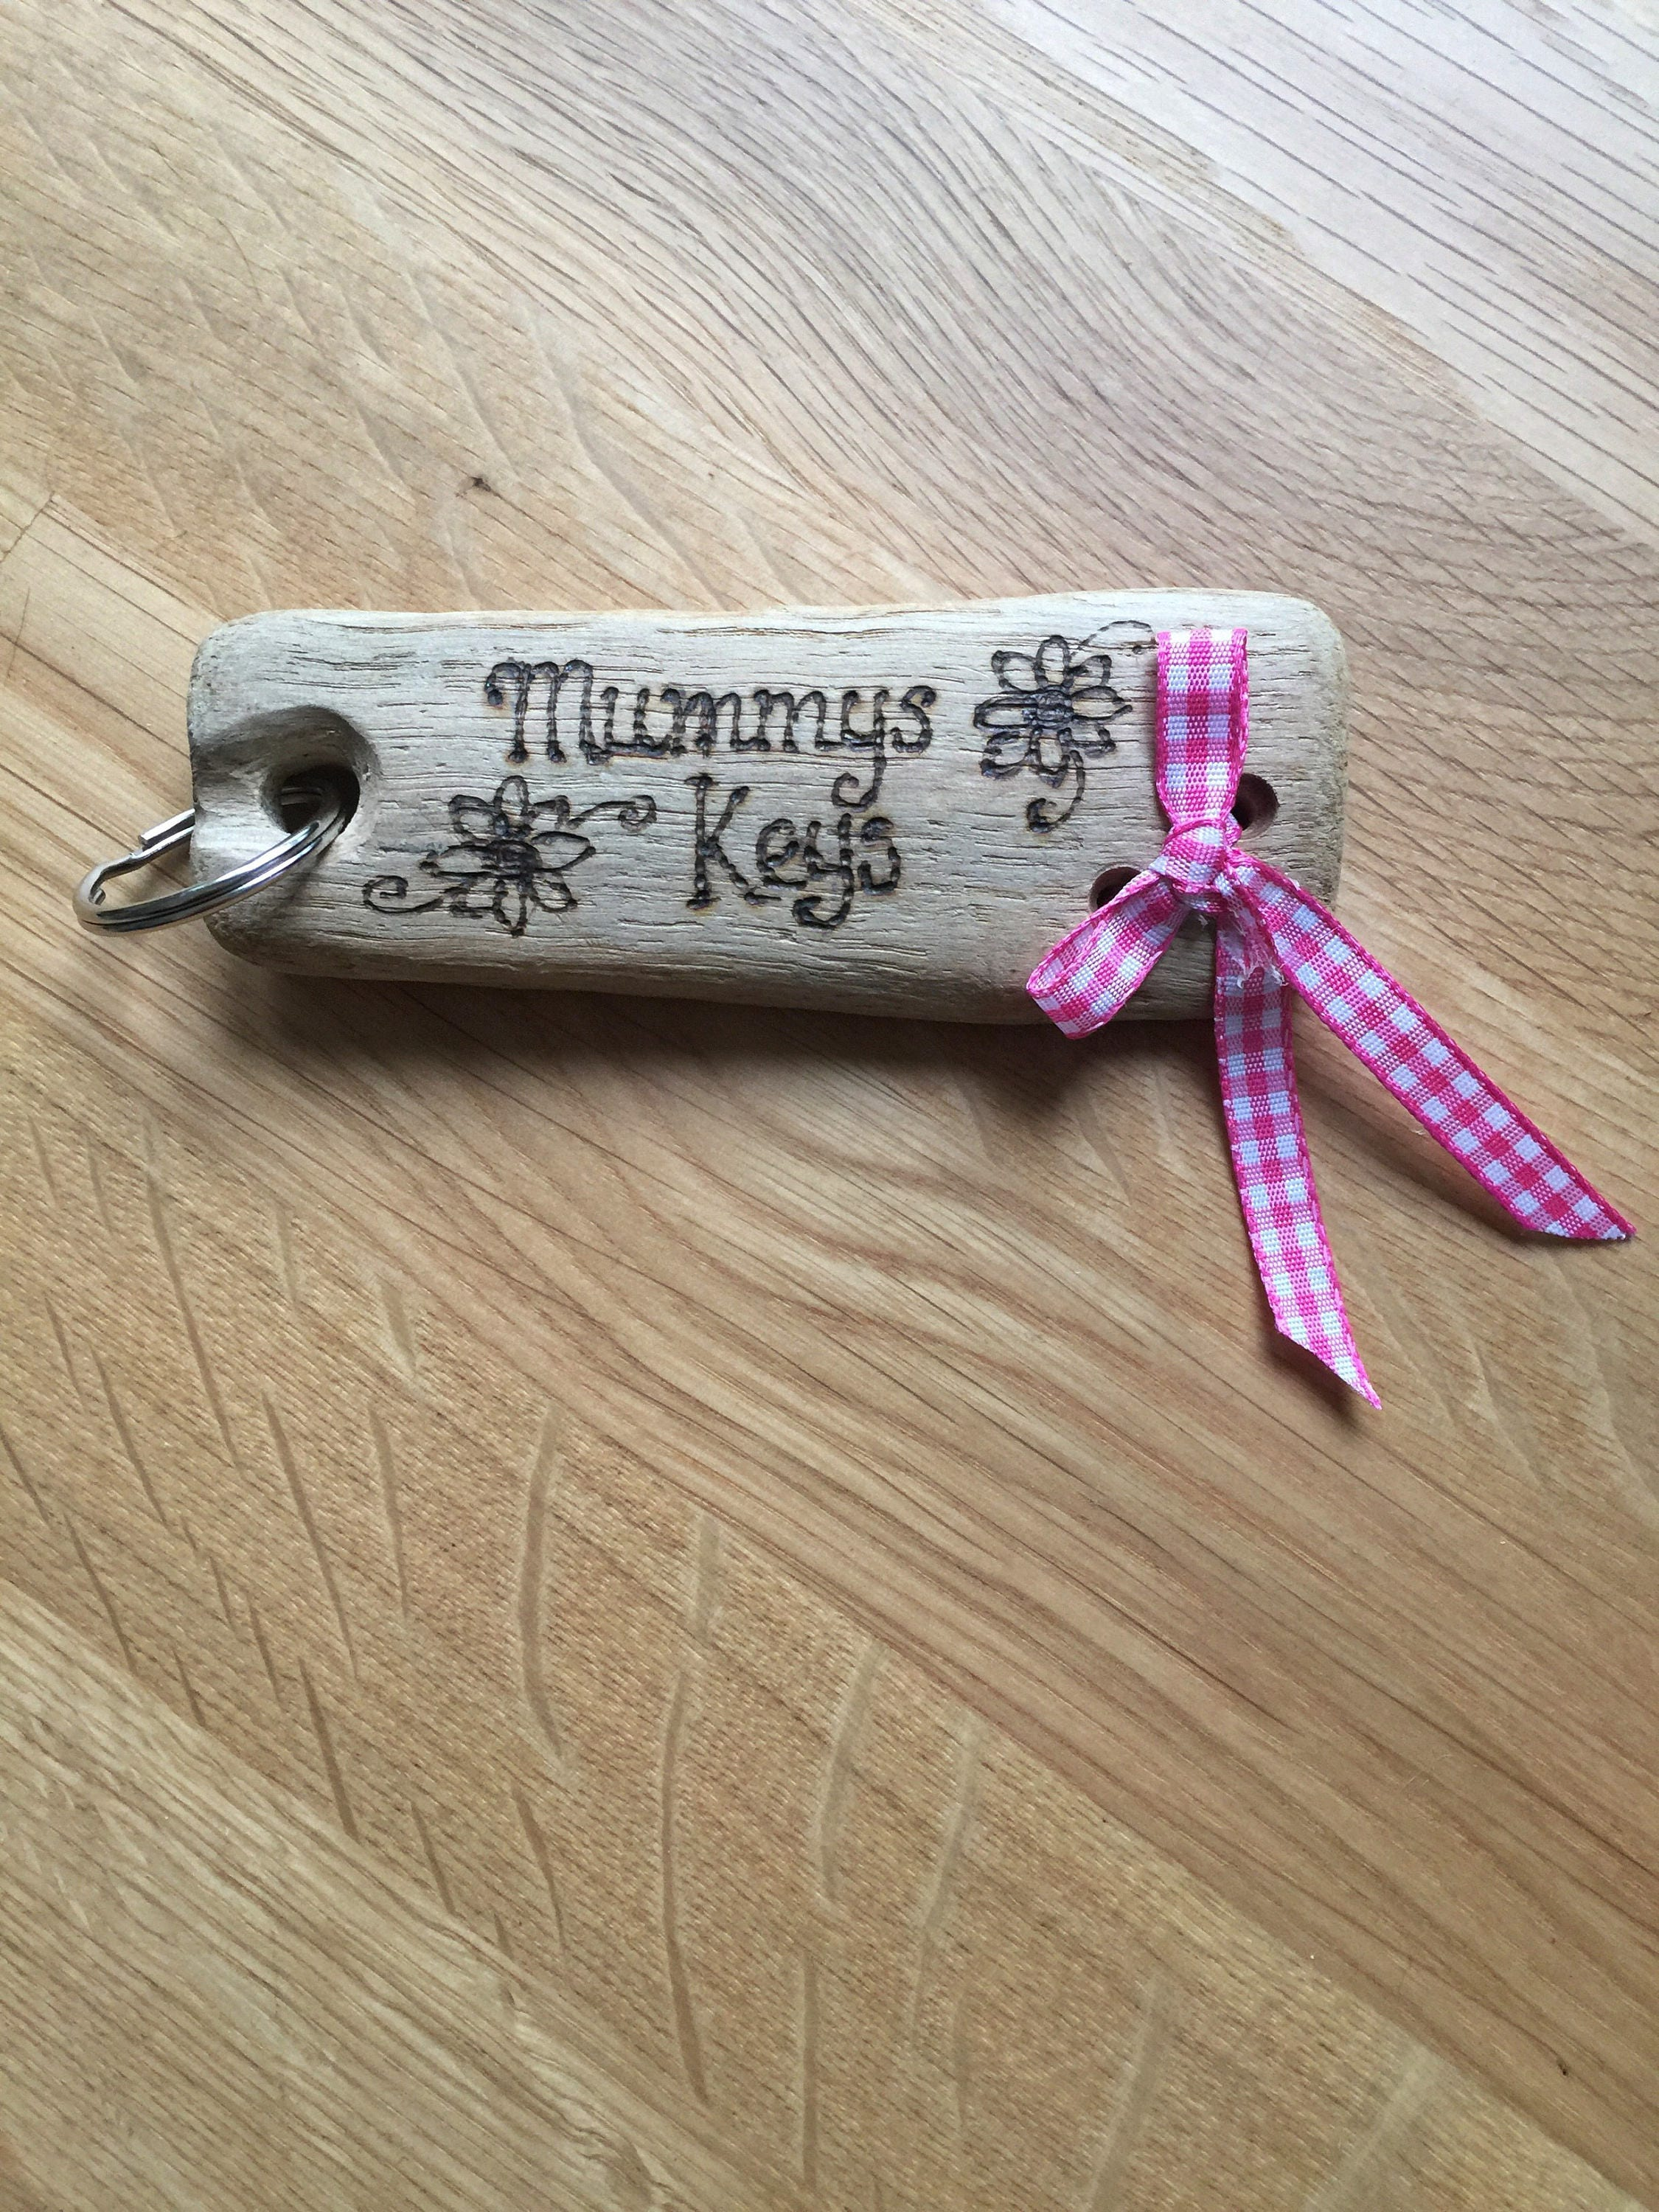 Personalised keyring driftwood keyring keychain personalised key fob driftwood key keeper wooden key fob wooden key ring custom fob